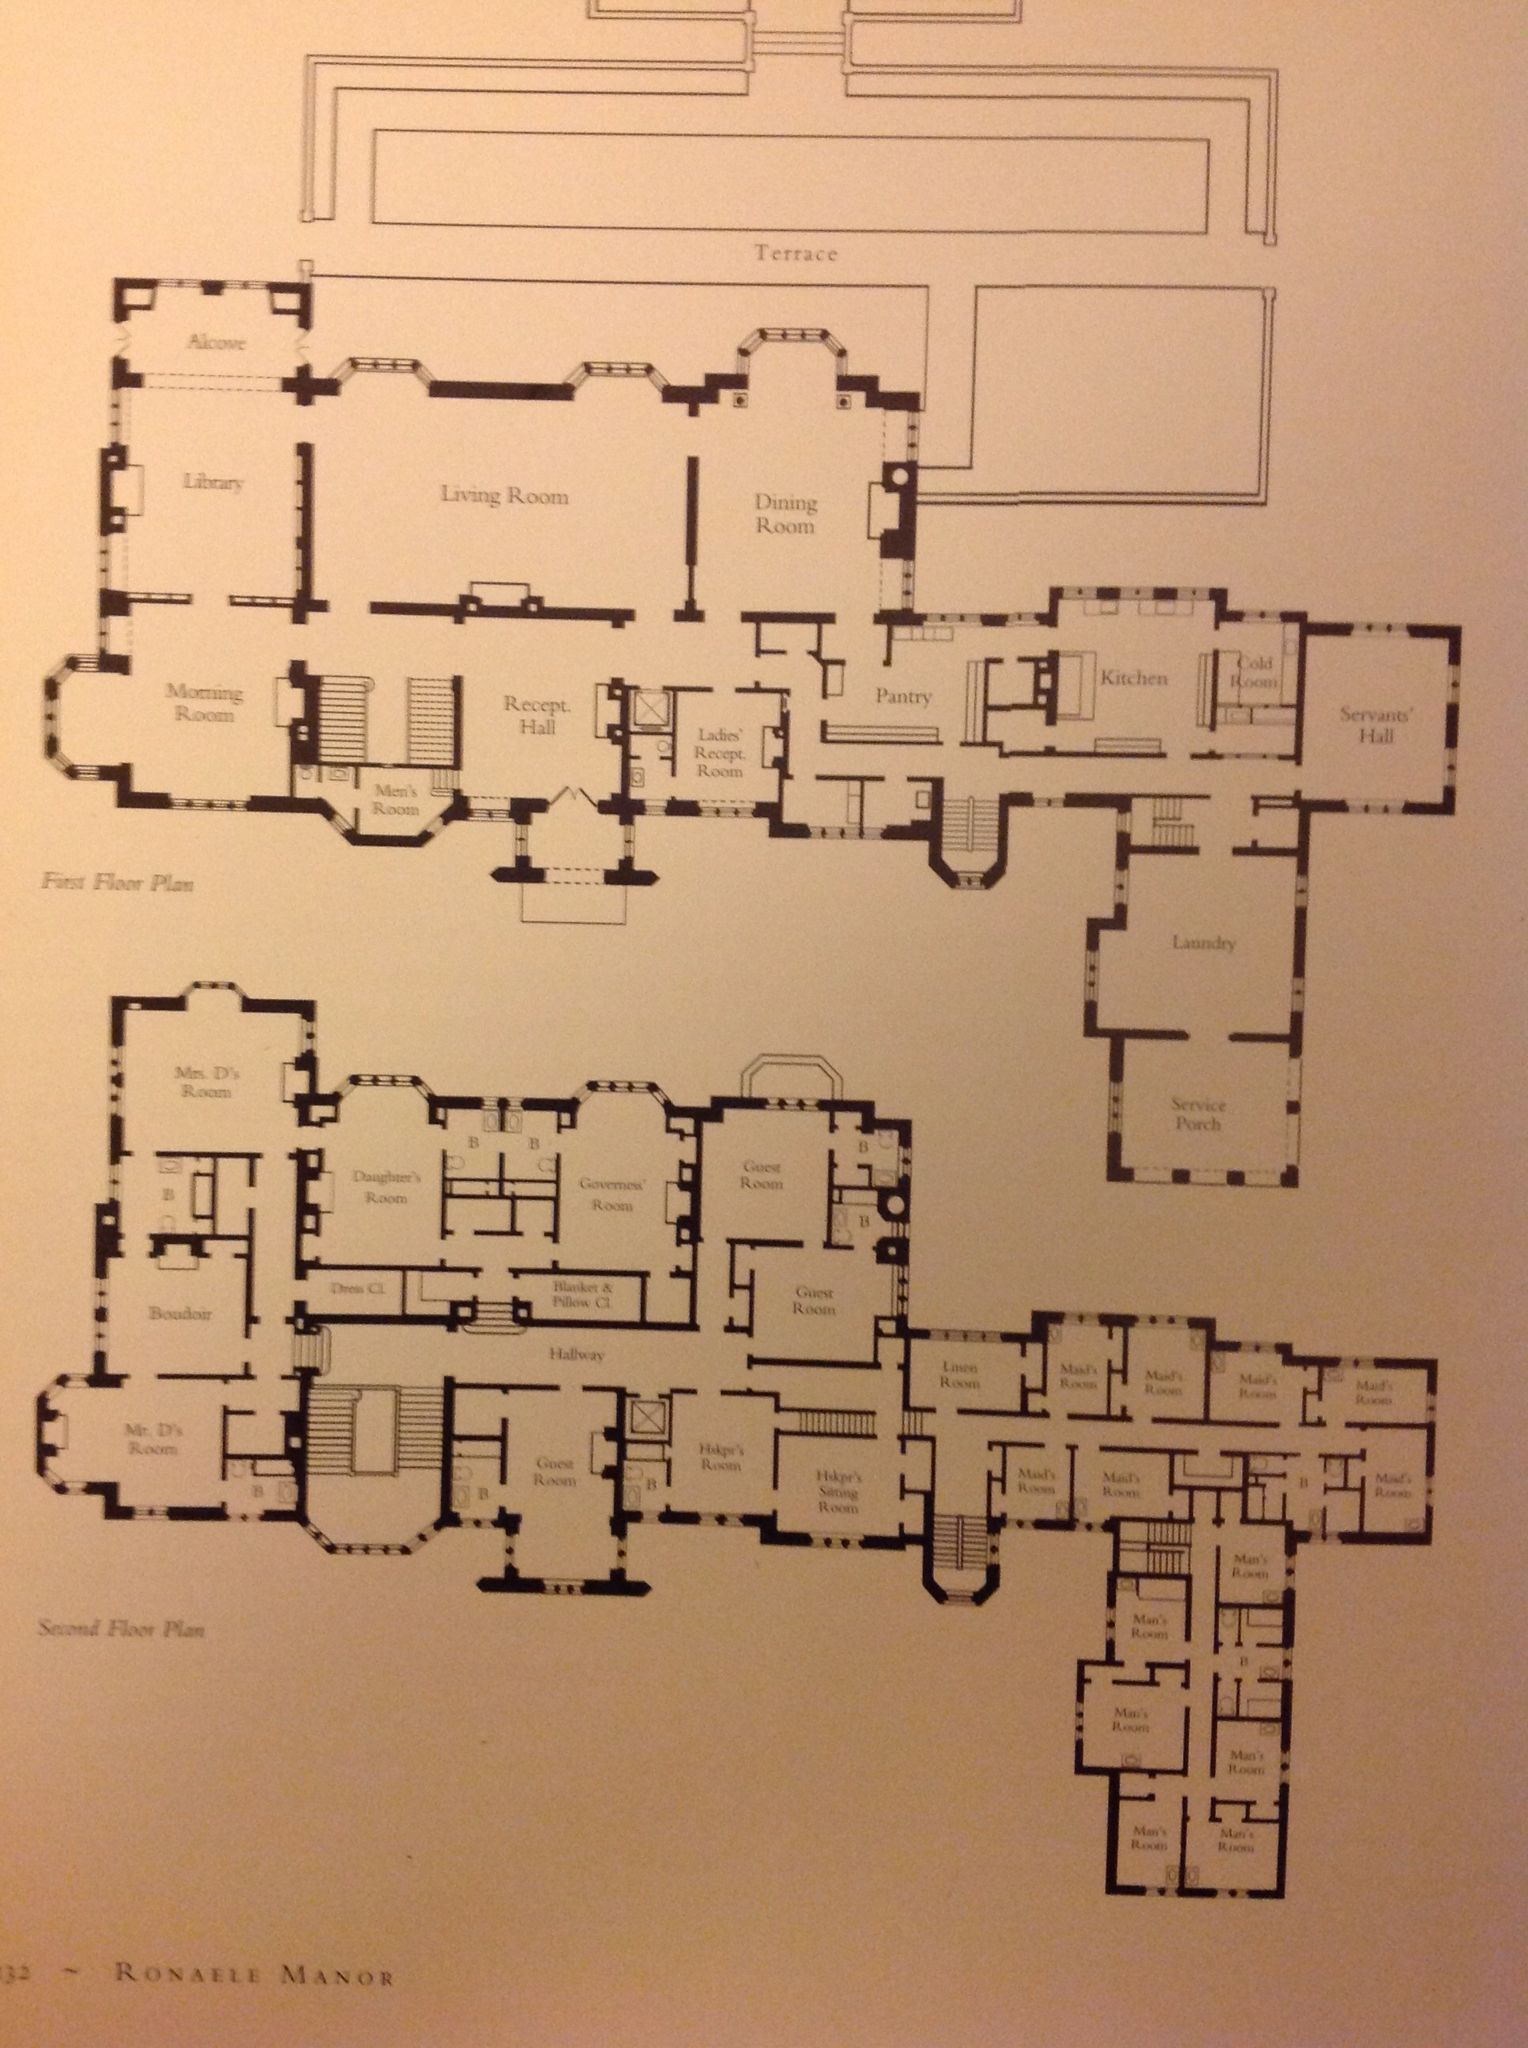 Ronaele Manor 1st and 2nd floors